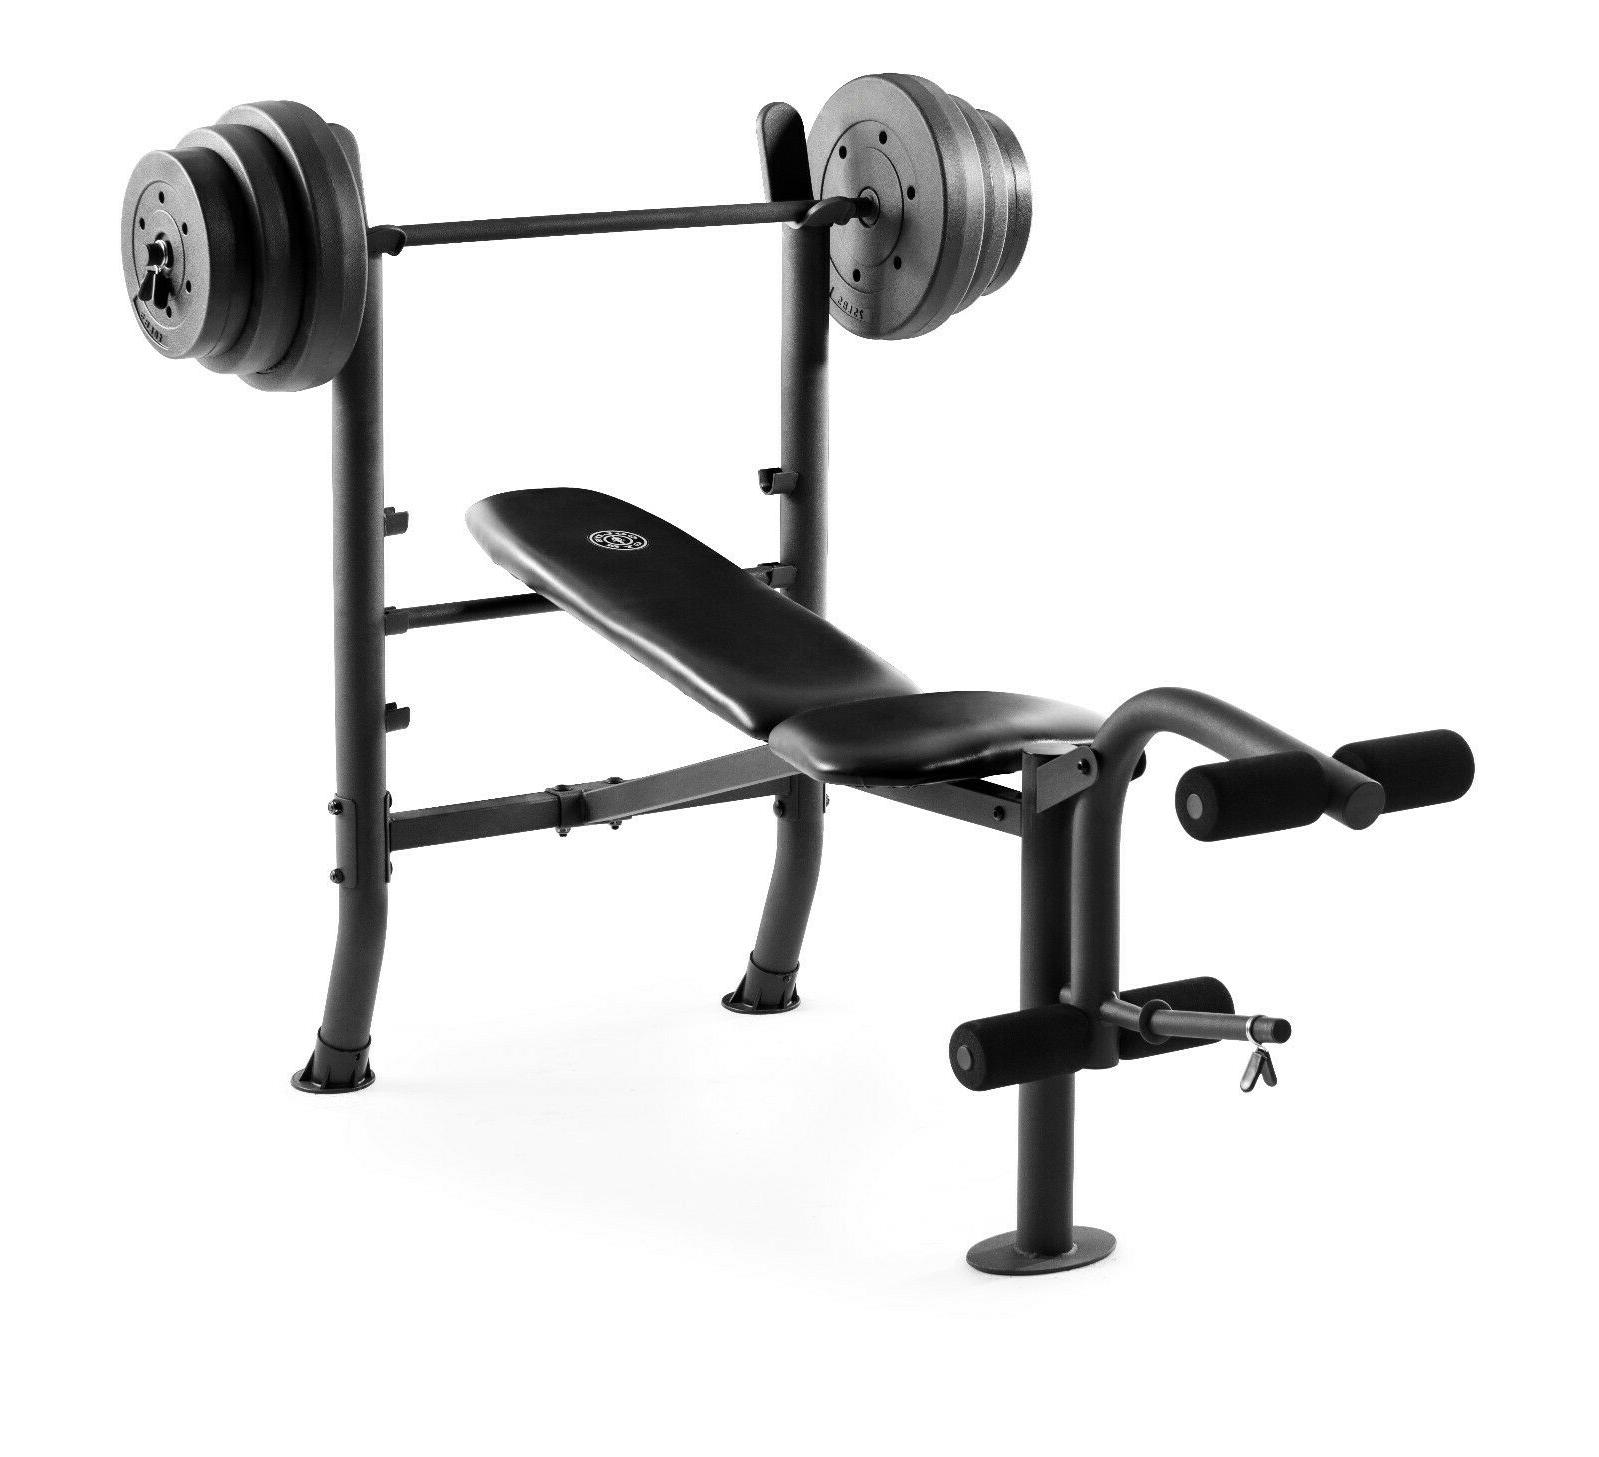 ADJUSTABLE LIFTING WEIGHT SET Weights And Flat